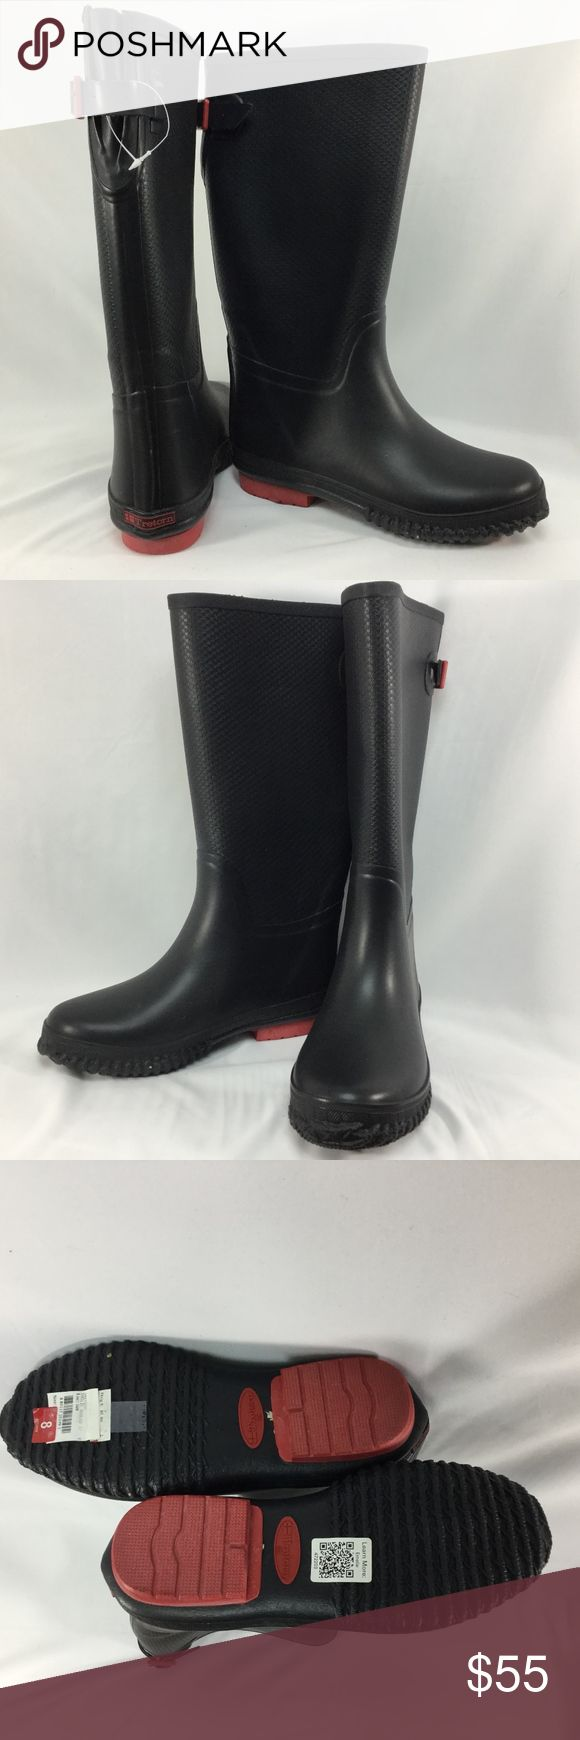 NWOB Rain Boots w/ Micro Fleece Lining Back Buckle Keep your feet warm and dry through the rain and snow this season! All Black Boot w Red Buckle Accent   NWOB - New without Box - Tag fell off and taped back on to the bottom of the shoe on the left shoe ~ Manufacturer tag still on the bottom right  All natural rubber boot with micro fleece lining Tretorn Shoes Winter & Rain Boots